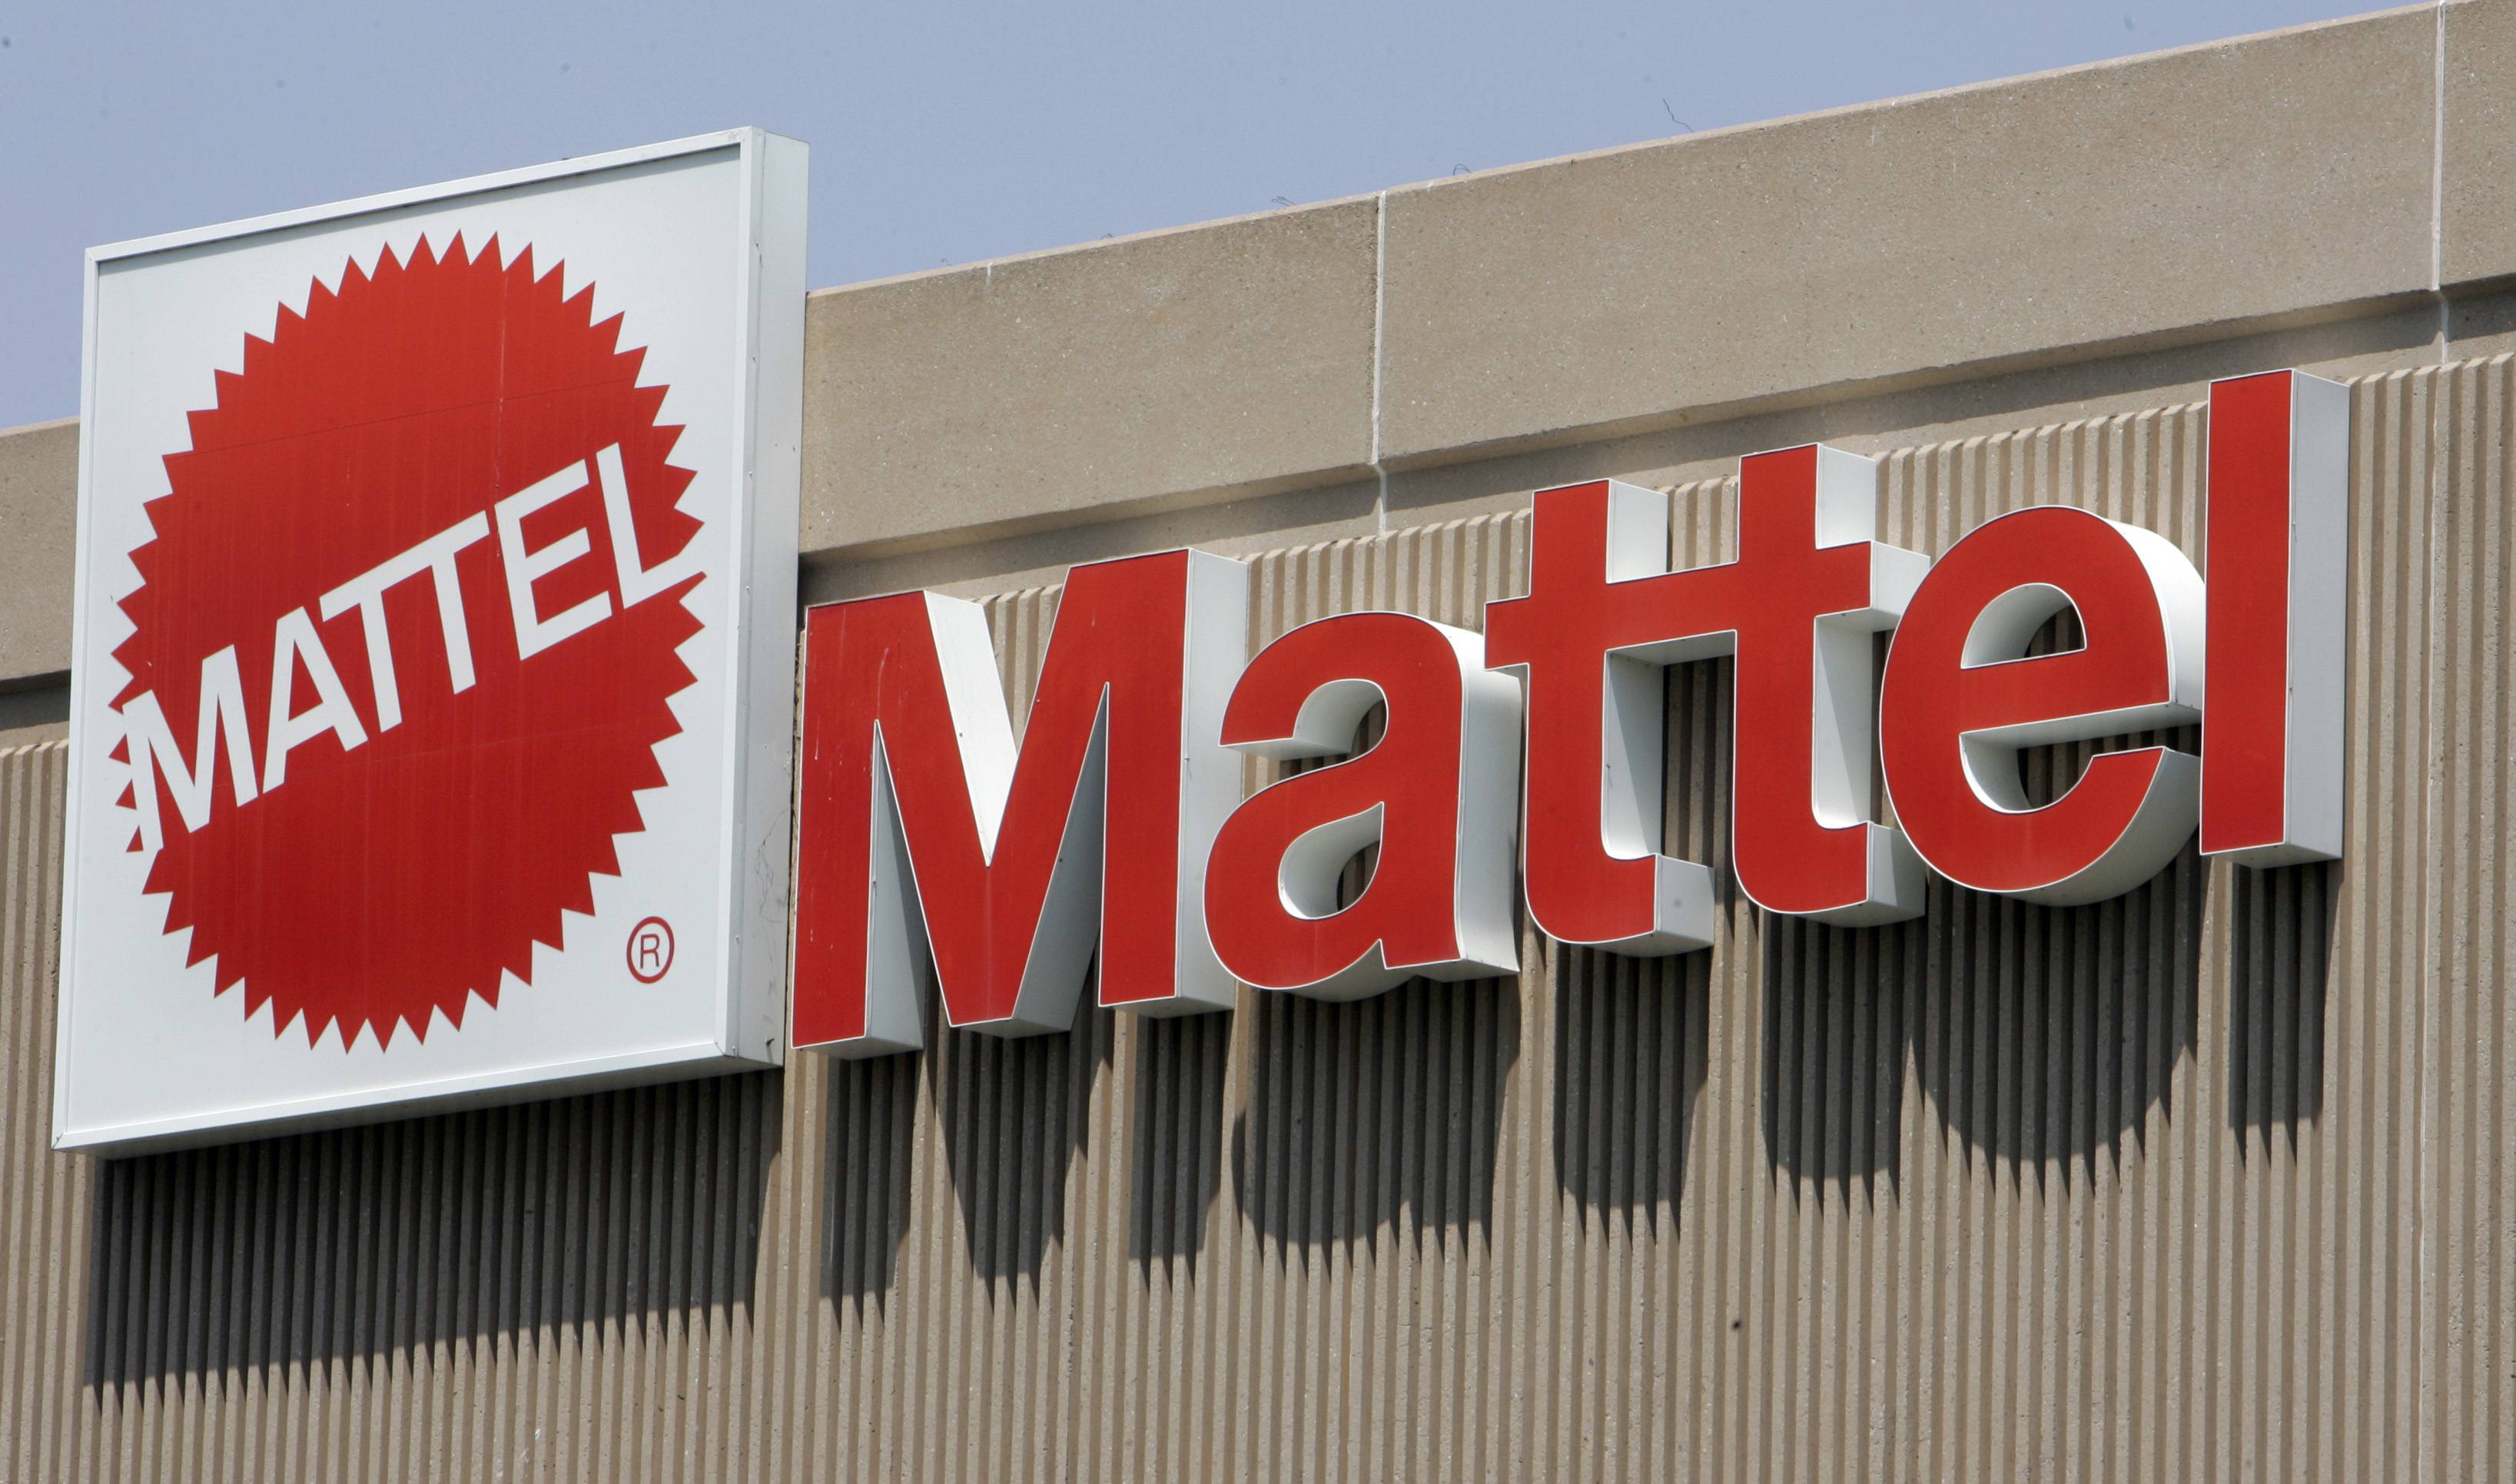 Toy maker Mattel says weak sales of Barbie and markdowns to clear out excess inventory left over from a sluggish holiday season led to an unexpected first-quarter loss.